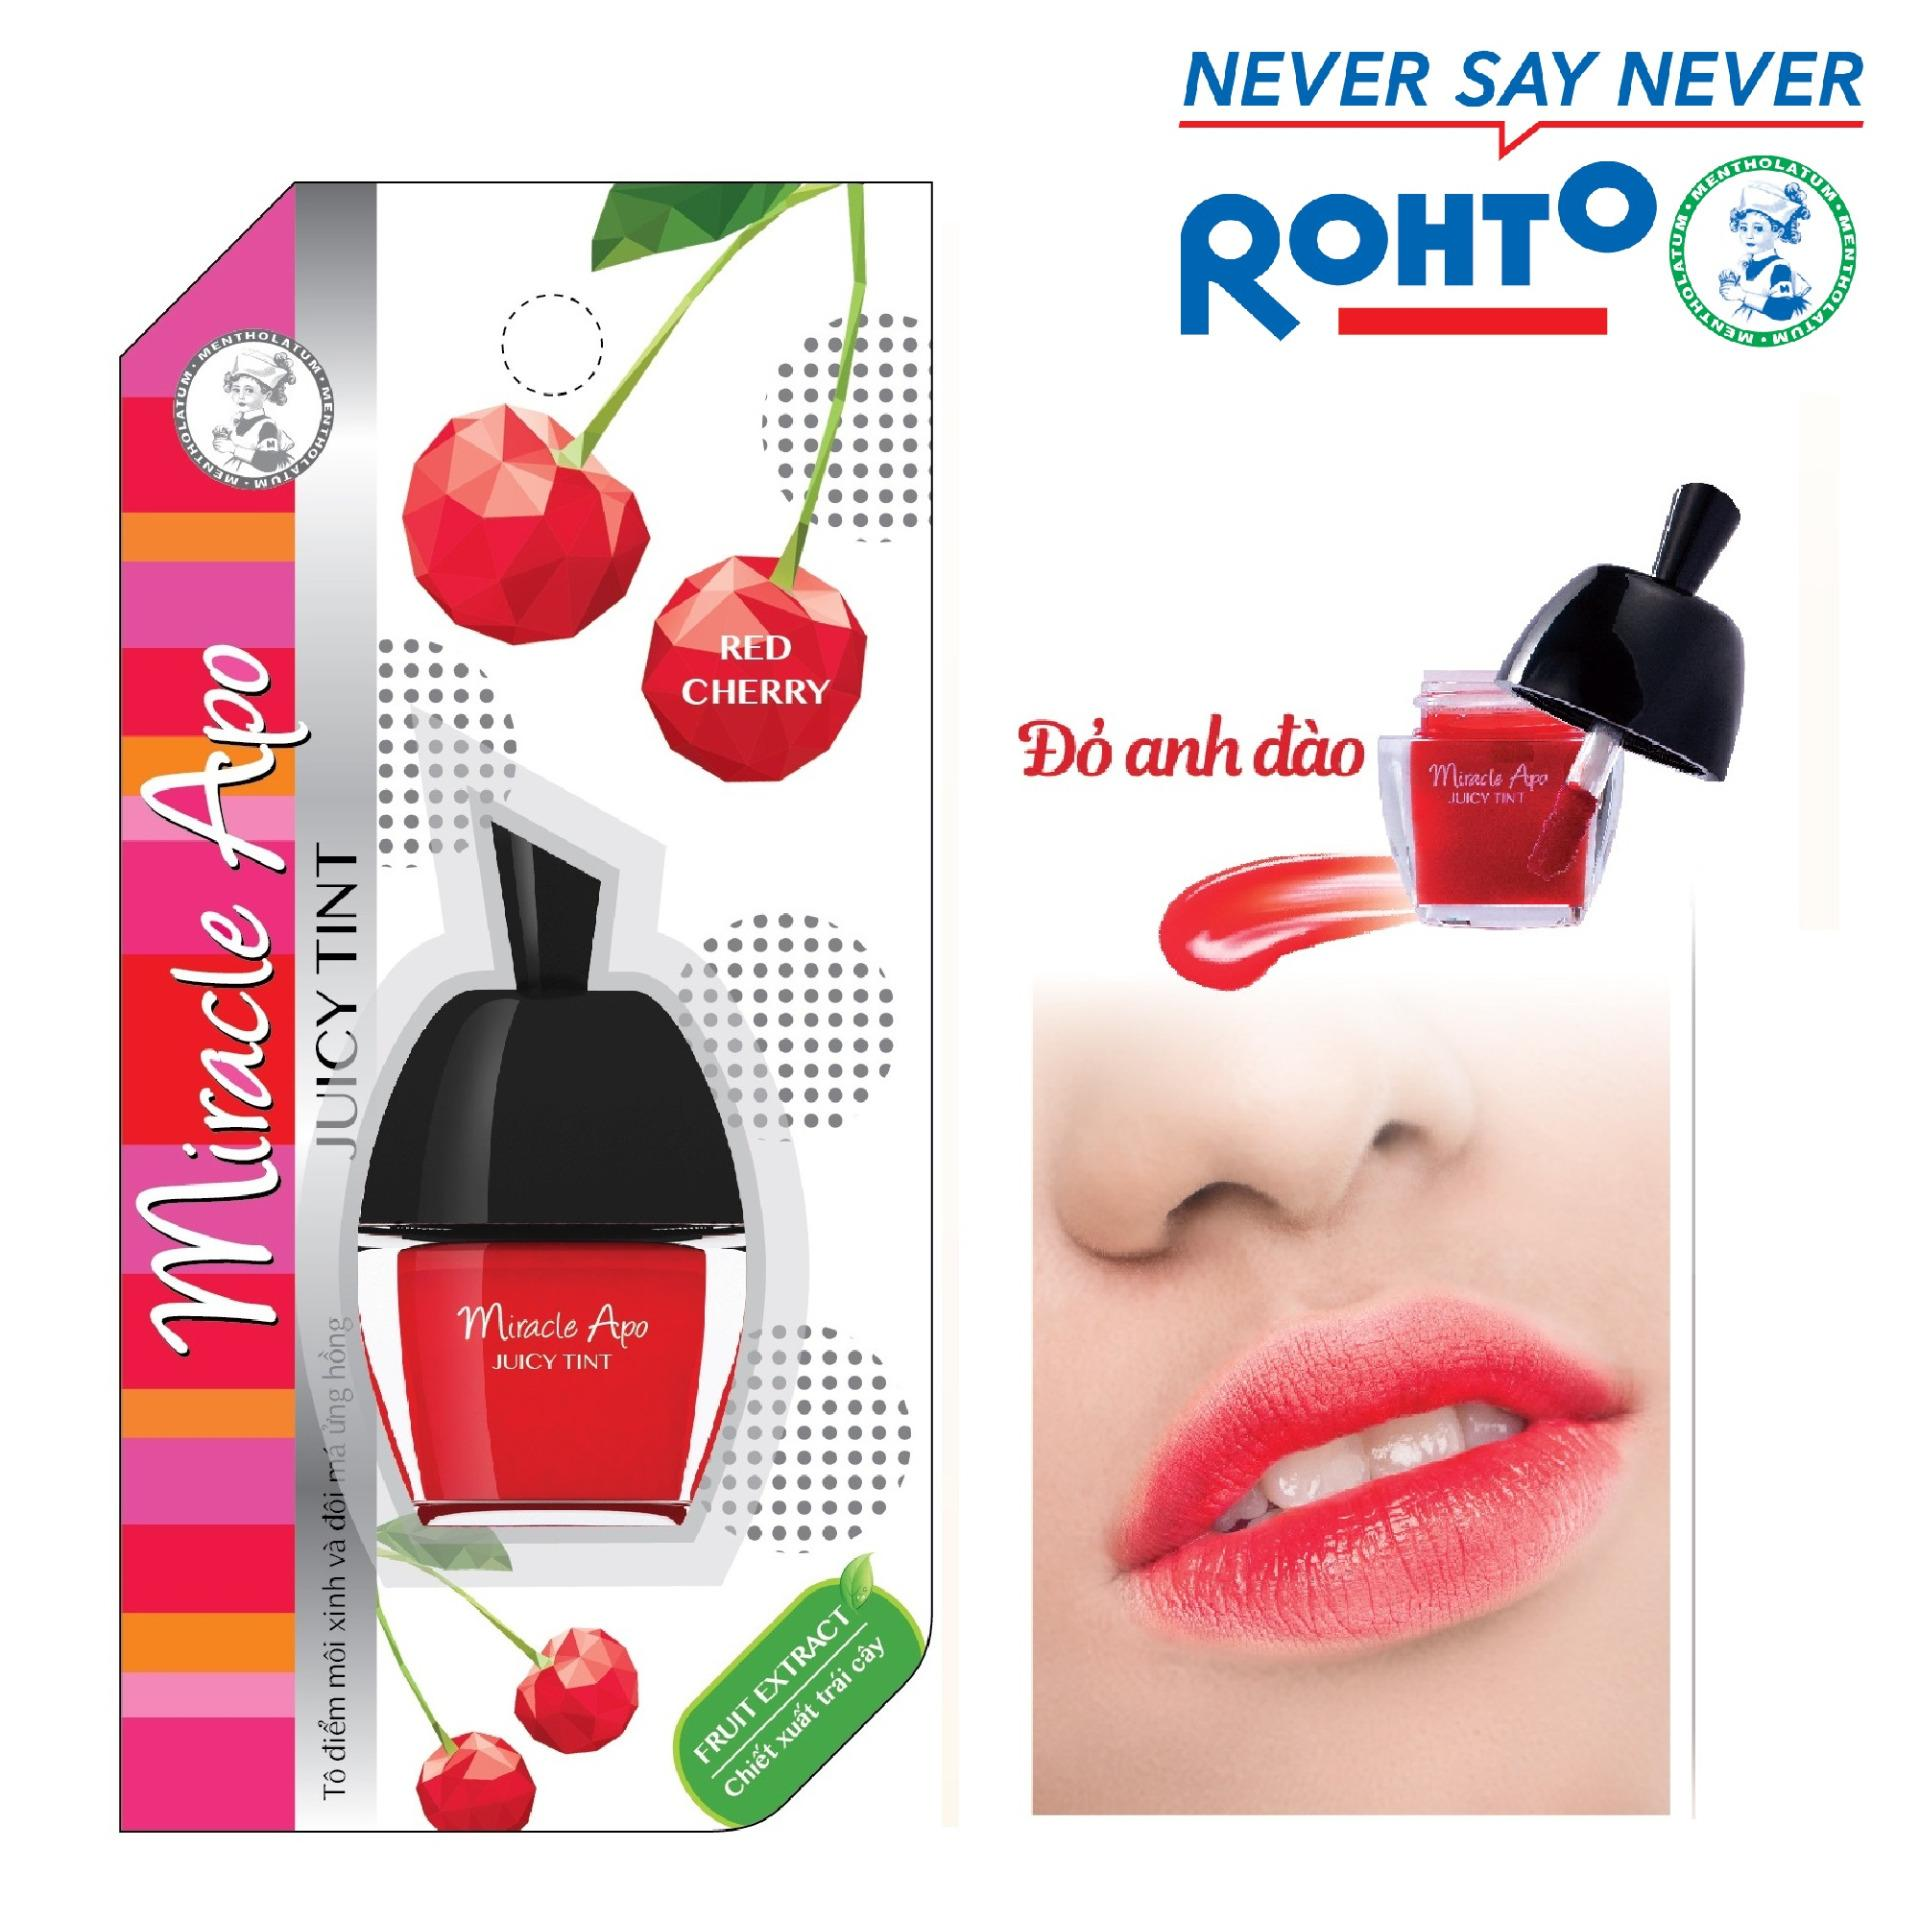 Son nuoc miracle apo juicy tint red cherry 35g do anh dao 1509075005 4592862